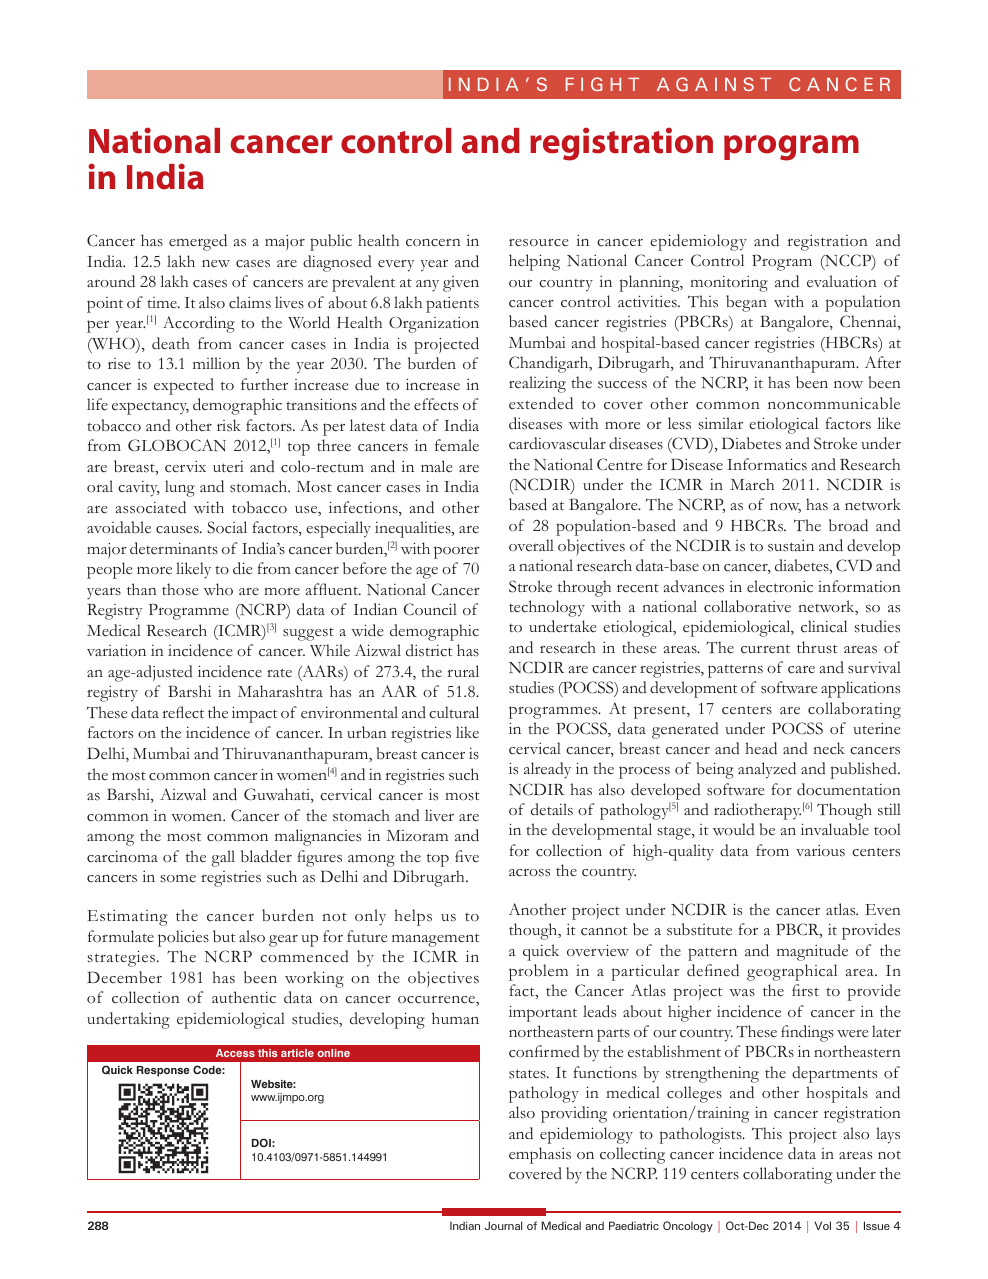 National cancer control and registration program in India